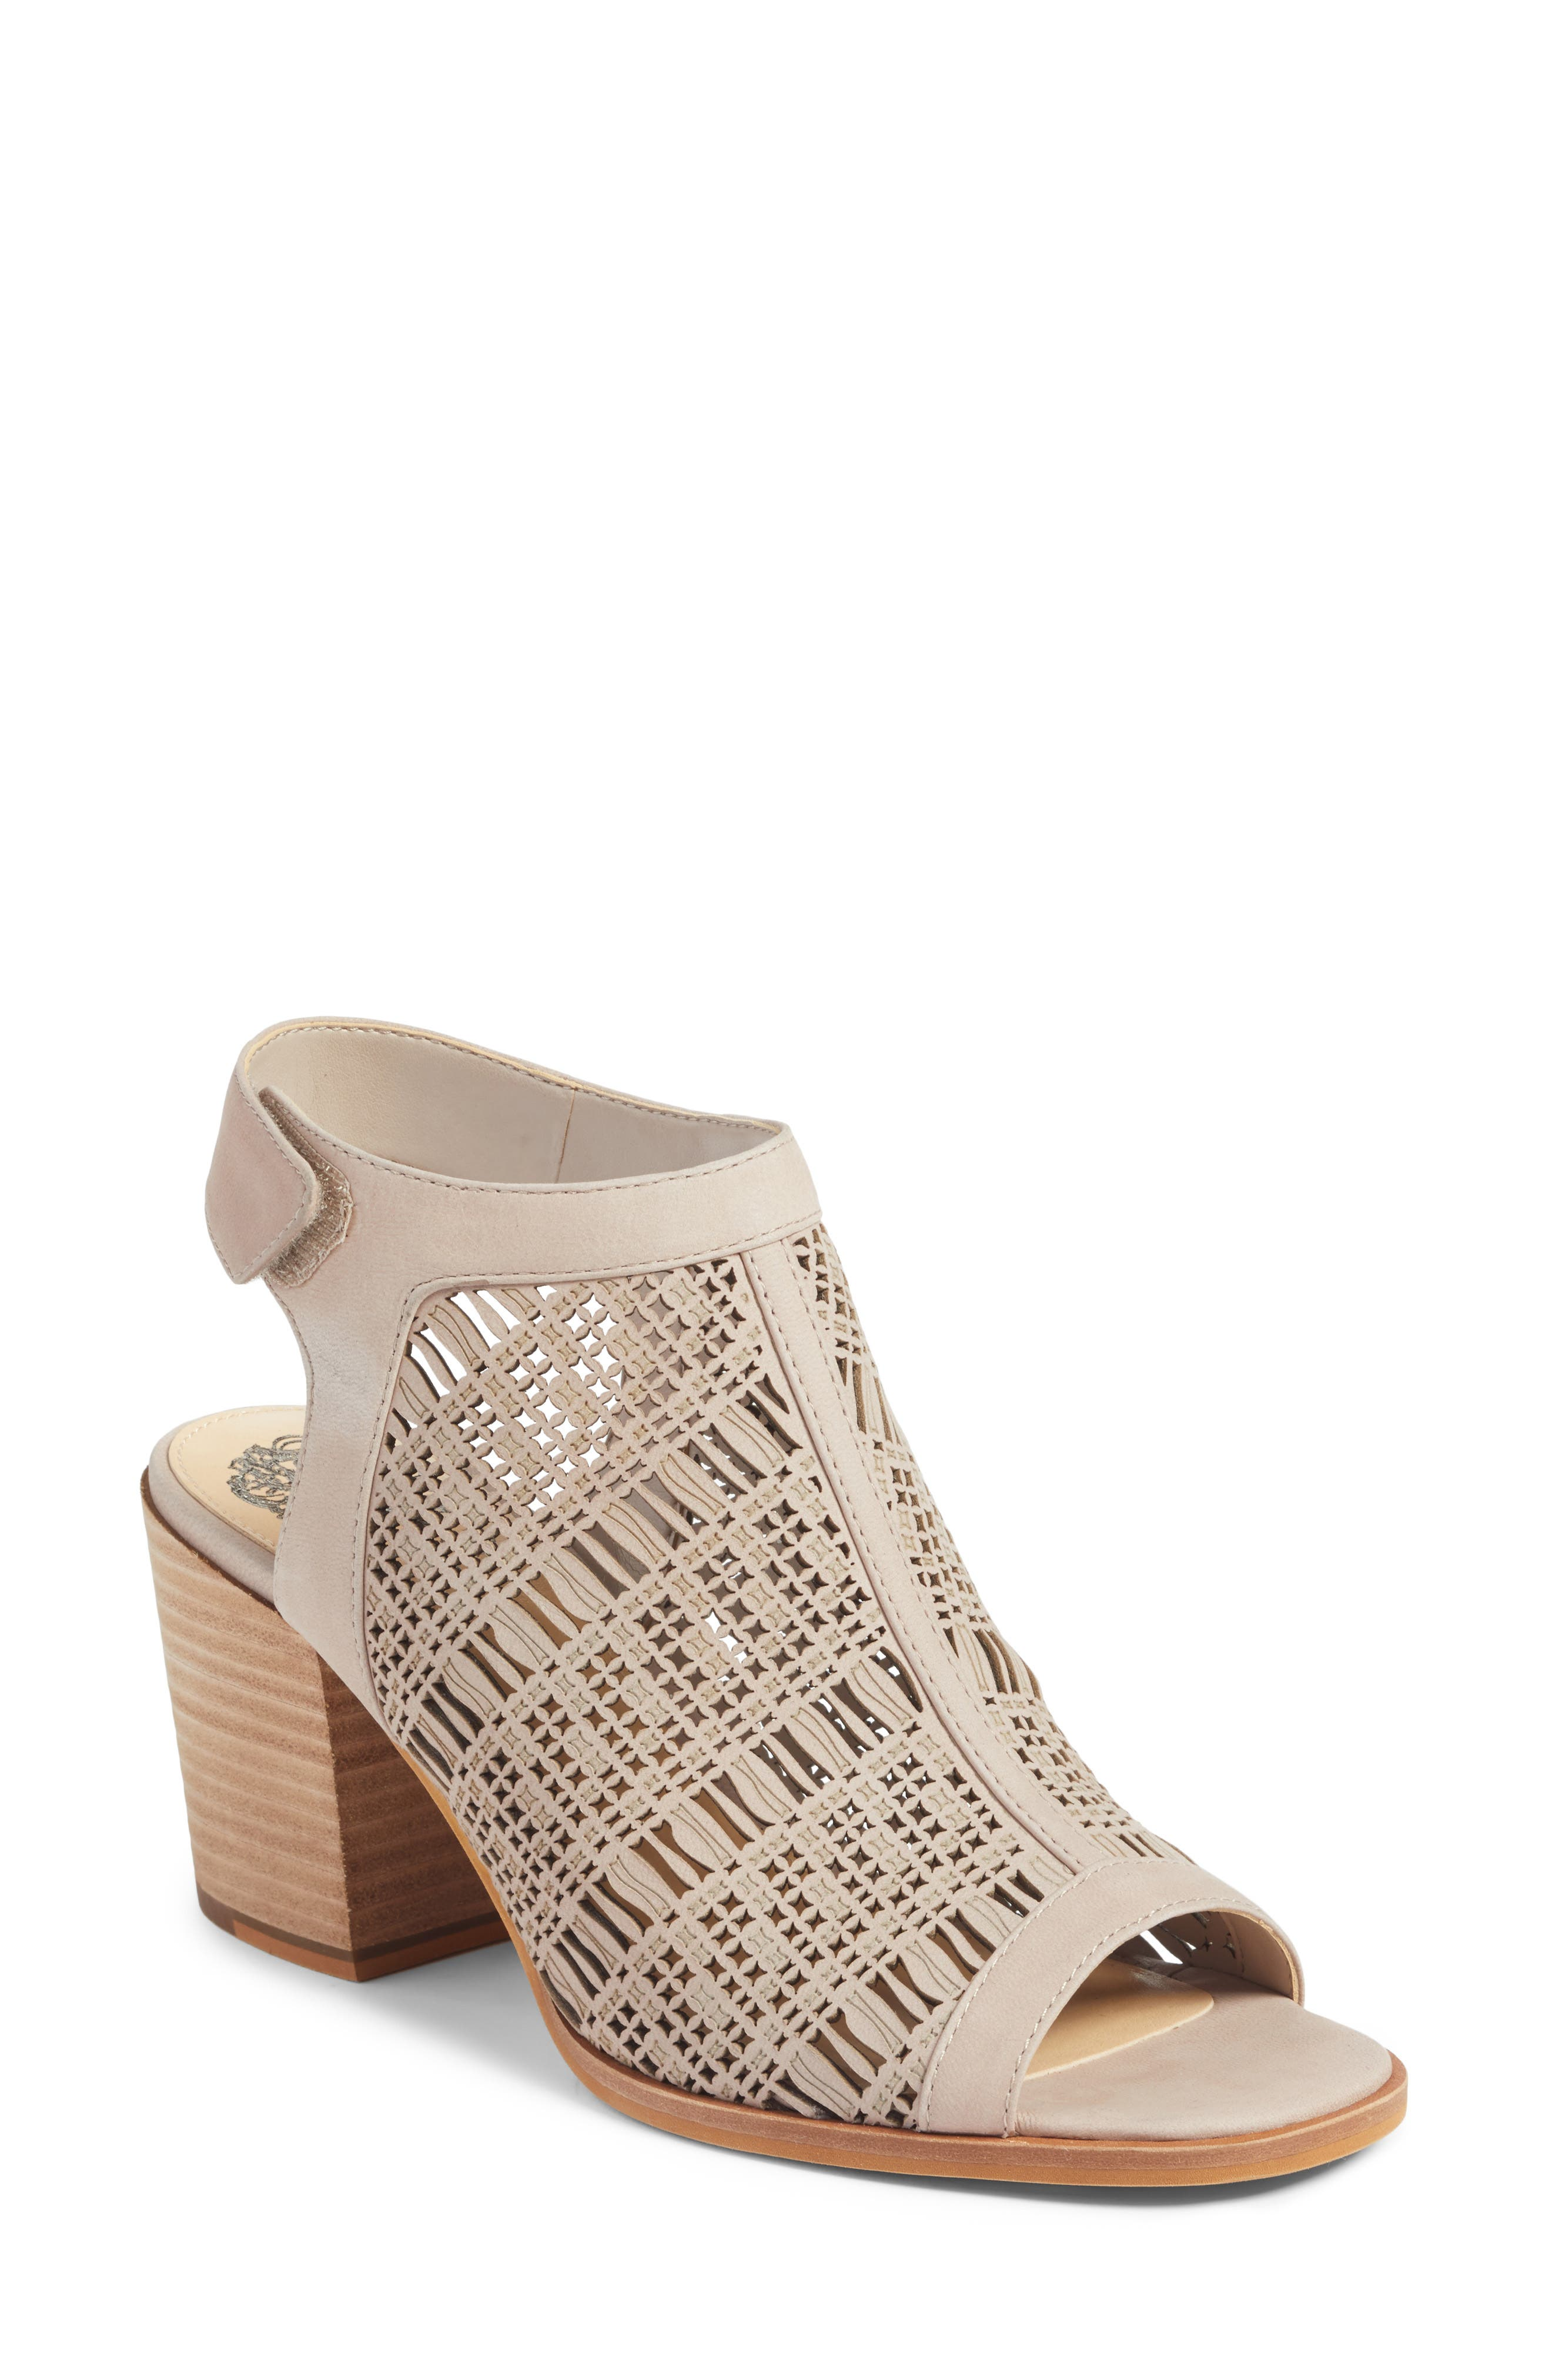 Keannie Sandal,                         Main,                         color, Tipsy Taupe Nubuck Leather